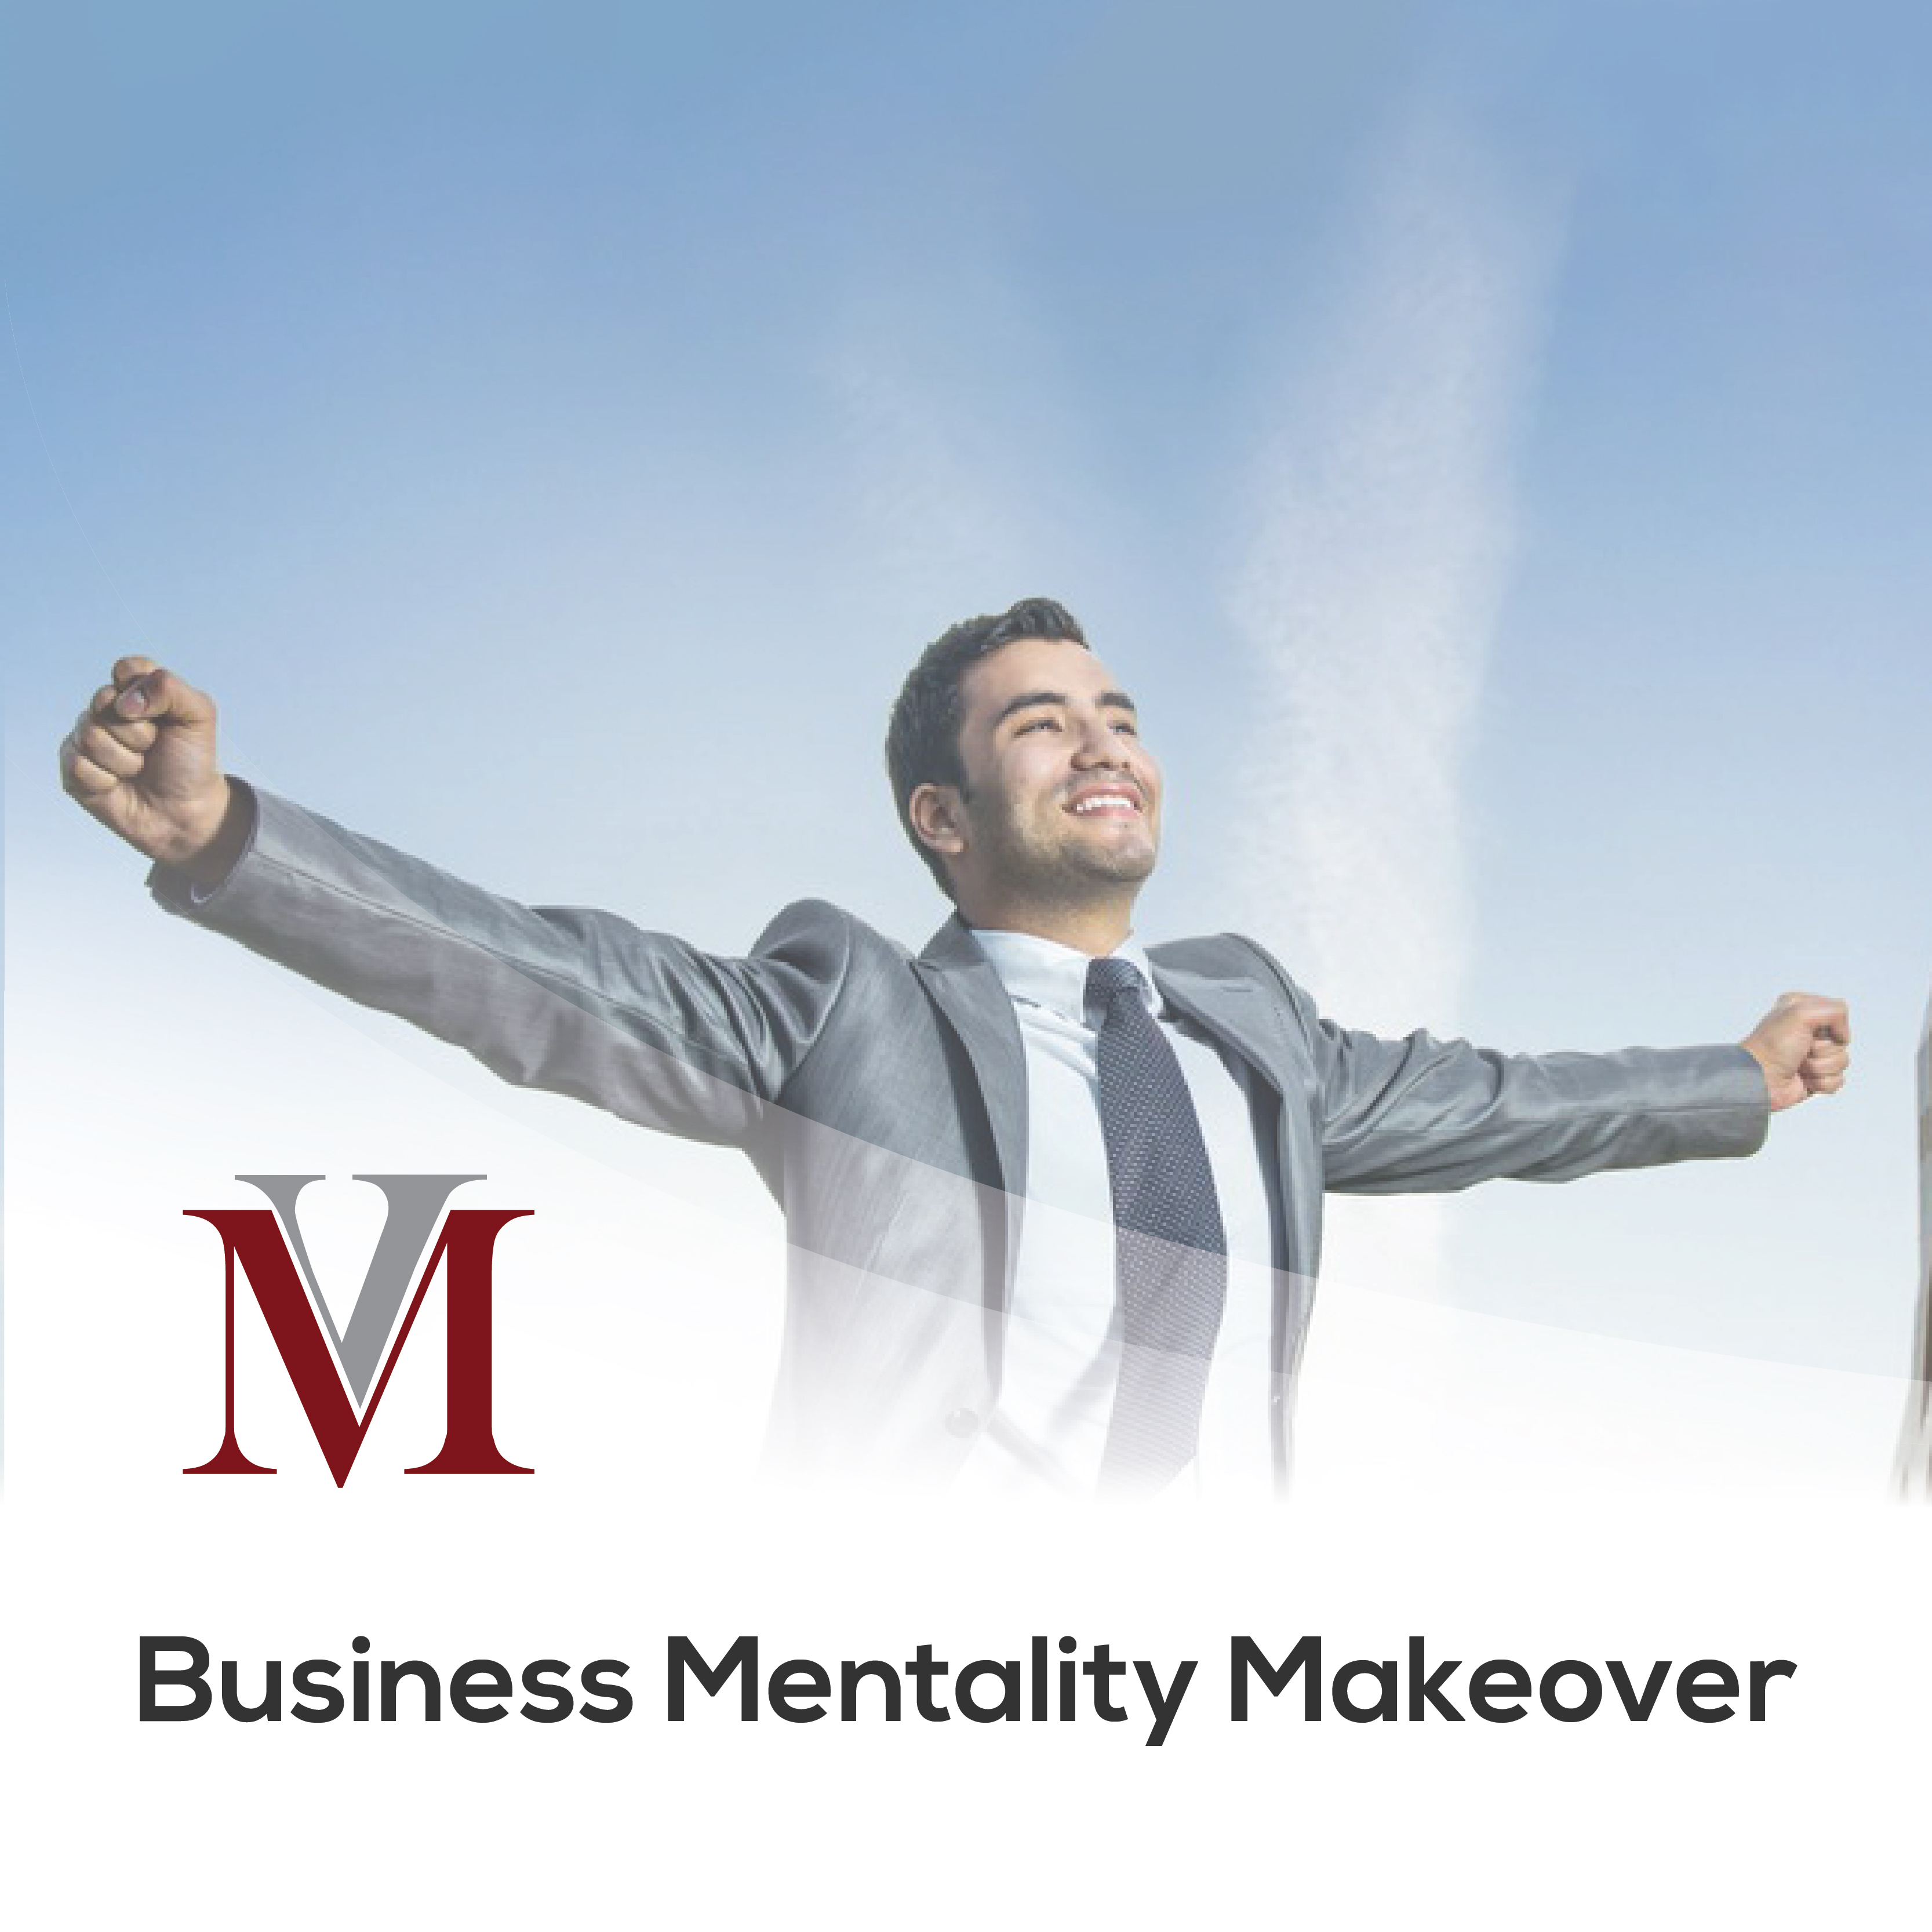 Business Mentality Makeover